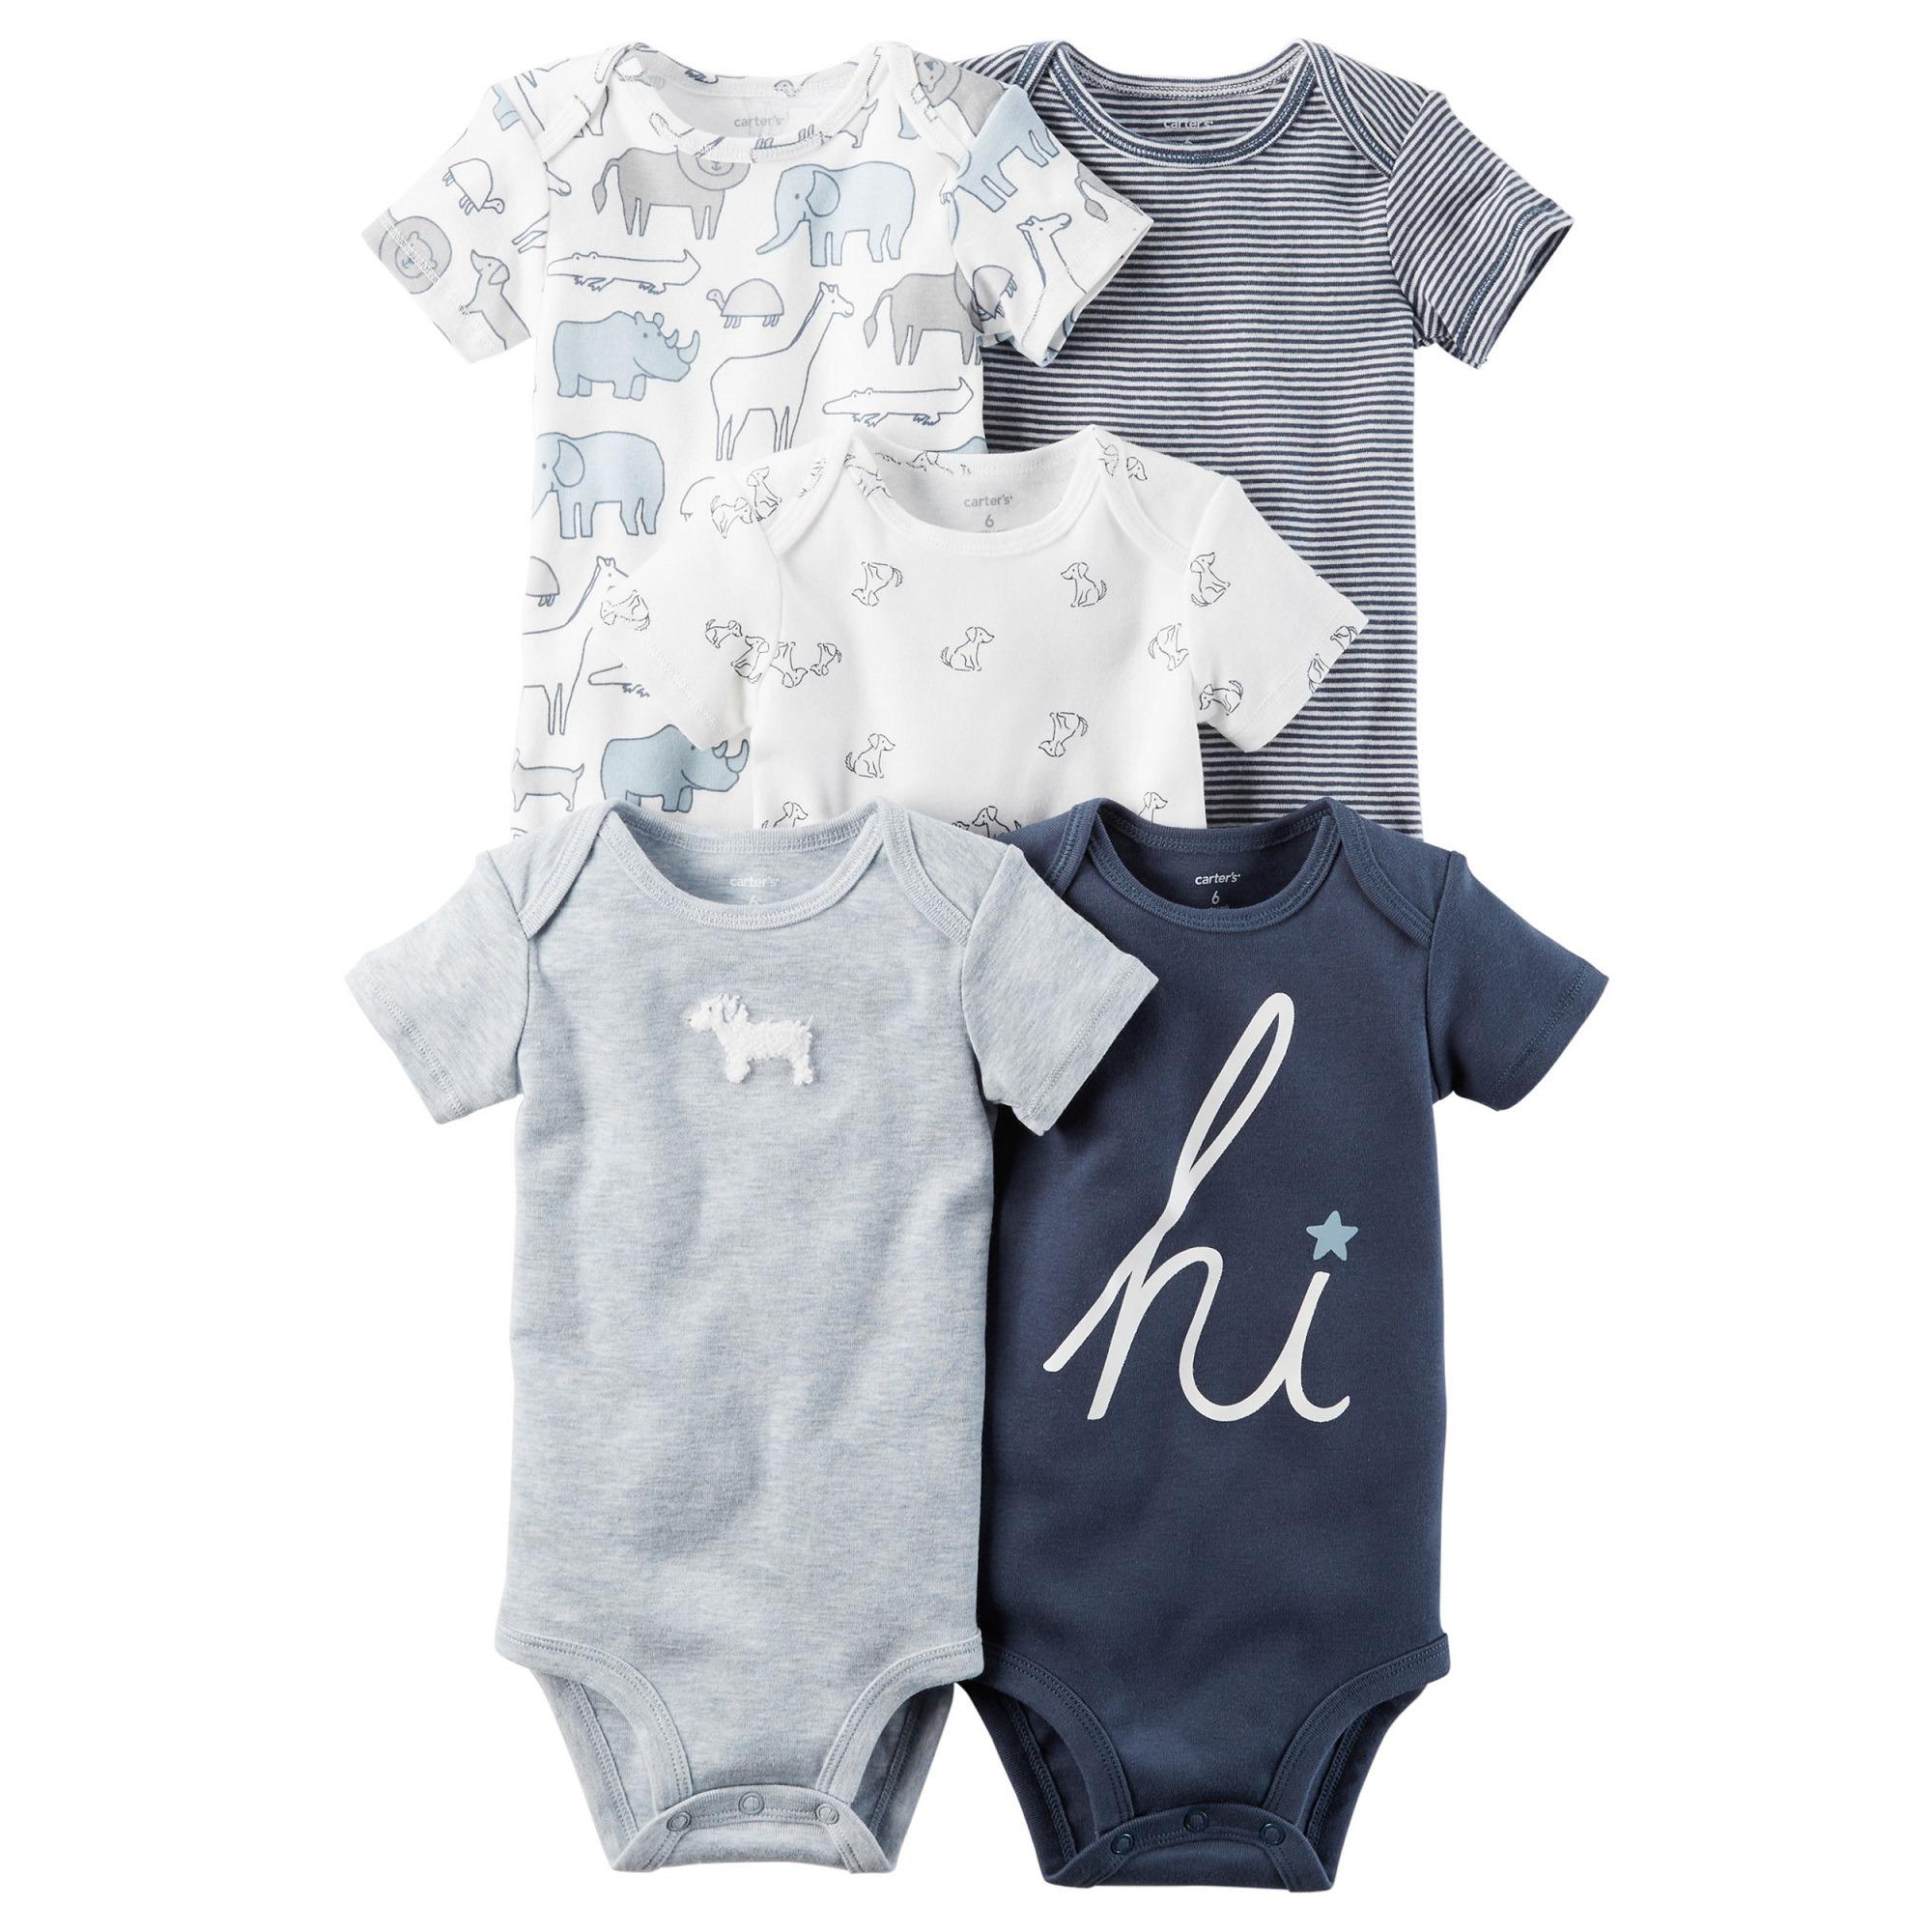 Buy Carter Baby Clothing Accessories